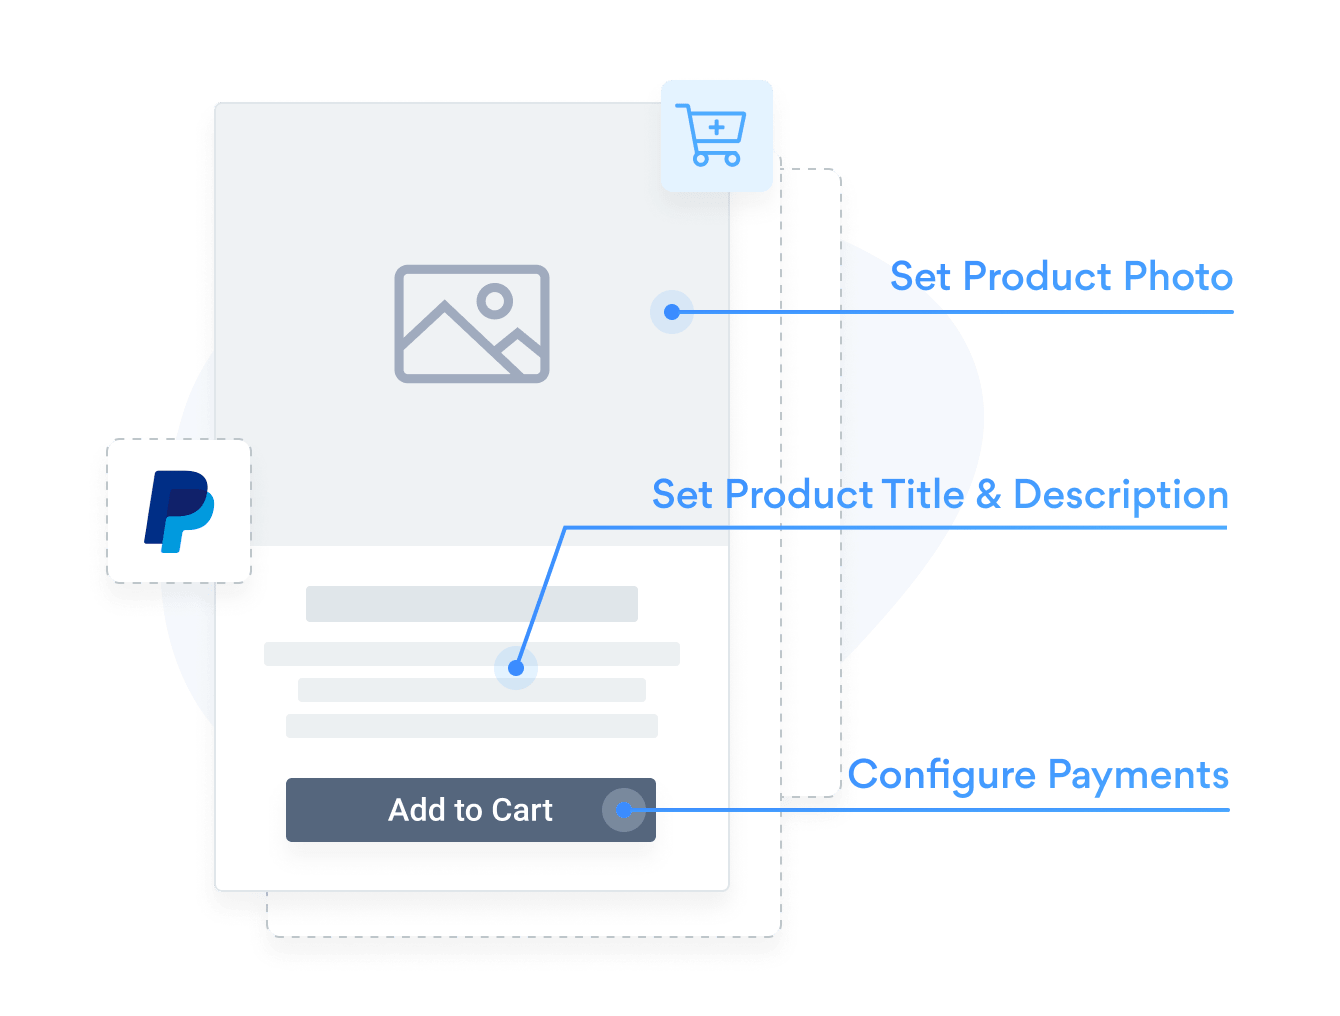 Add product titles, descriptions, images and configure payments with PayPal in POWR eCommerce.